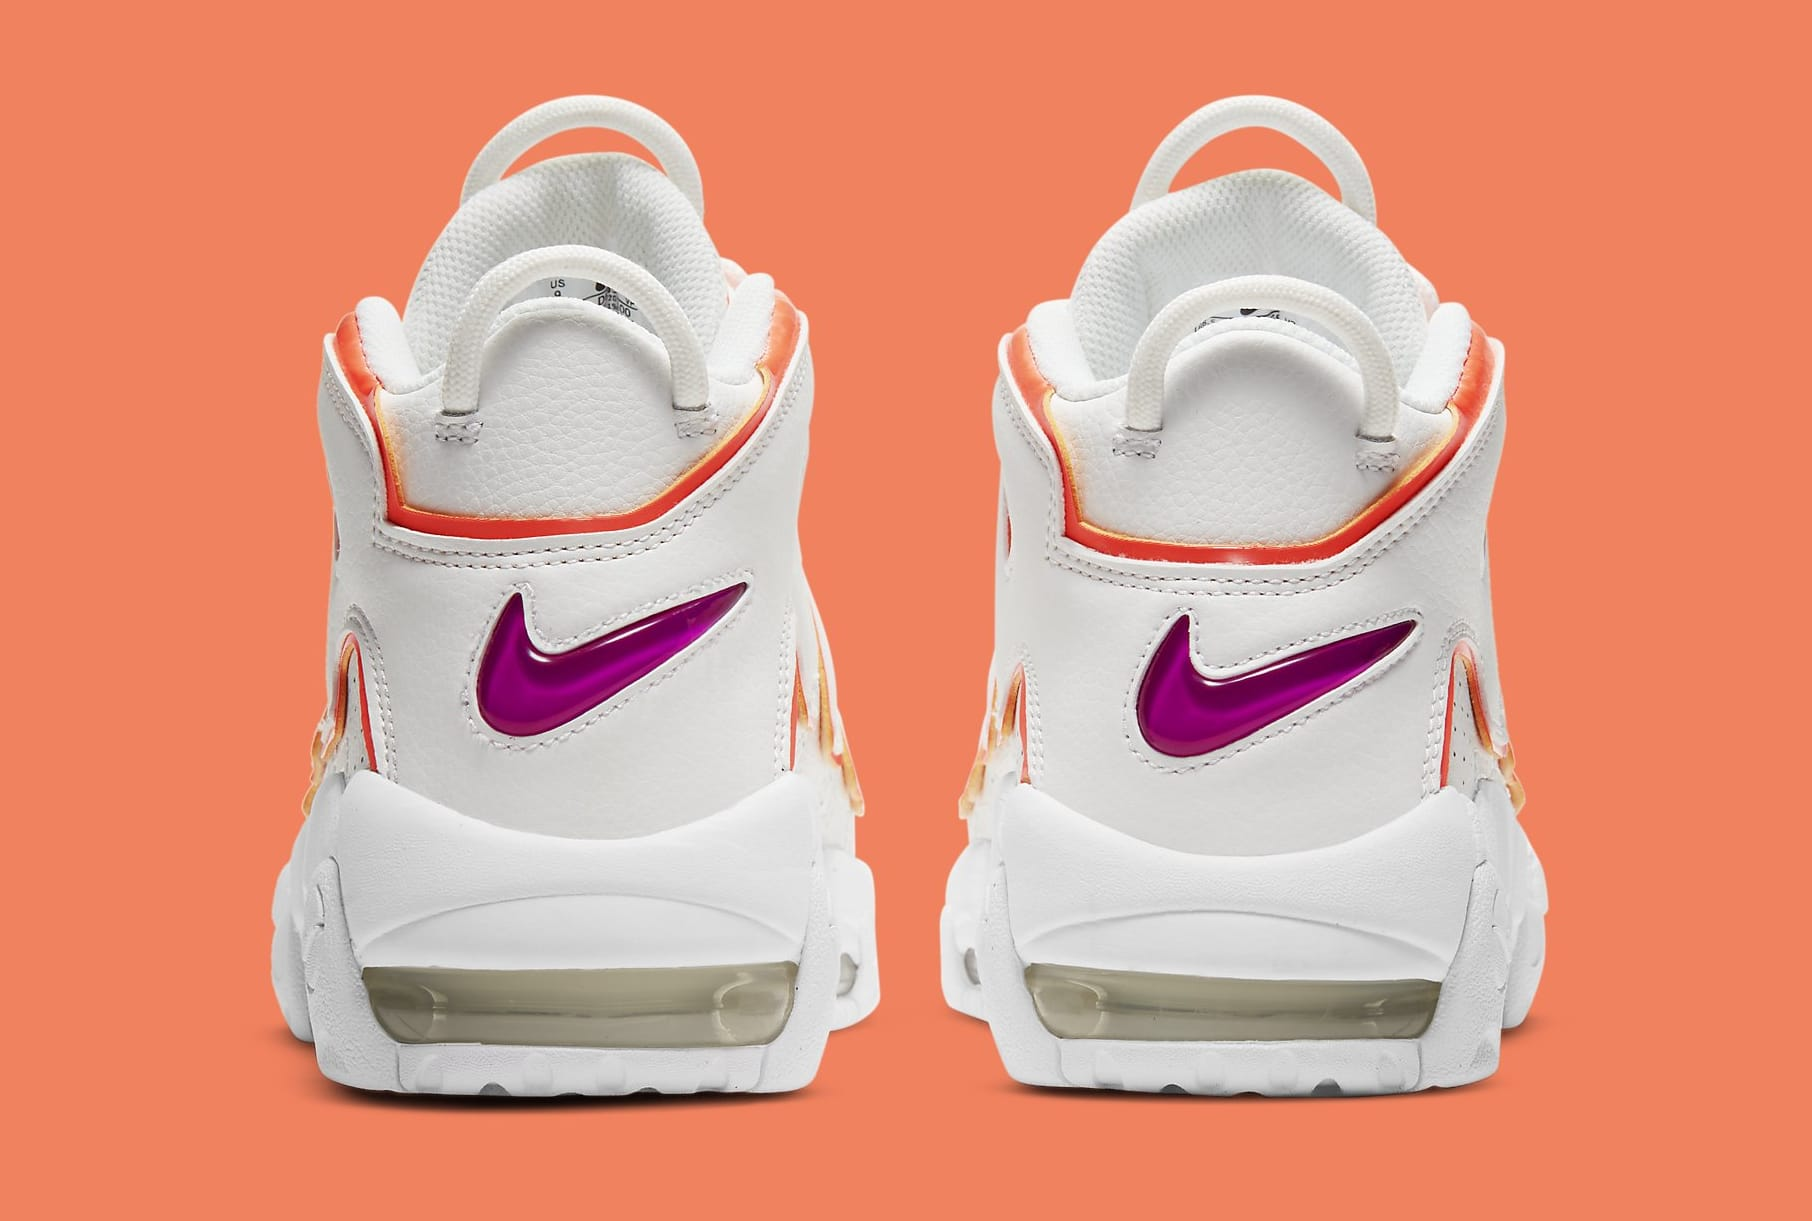 Nike Air More Uptempo 'Sunset' DH4968-100 Heel